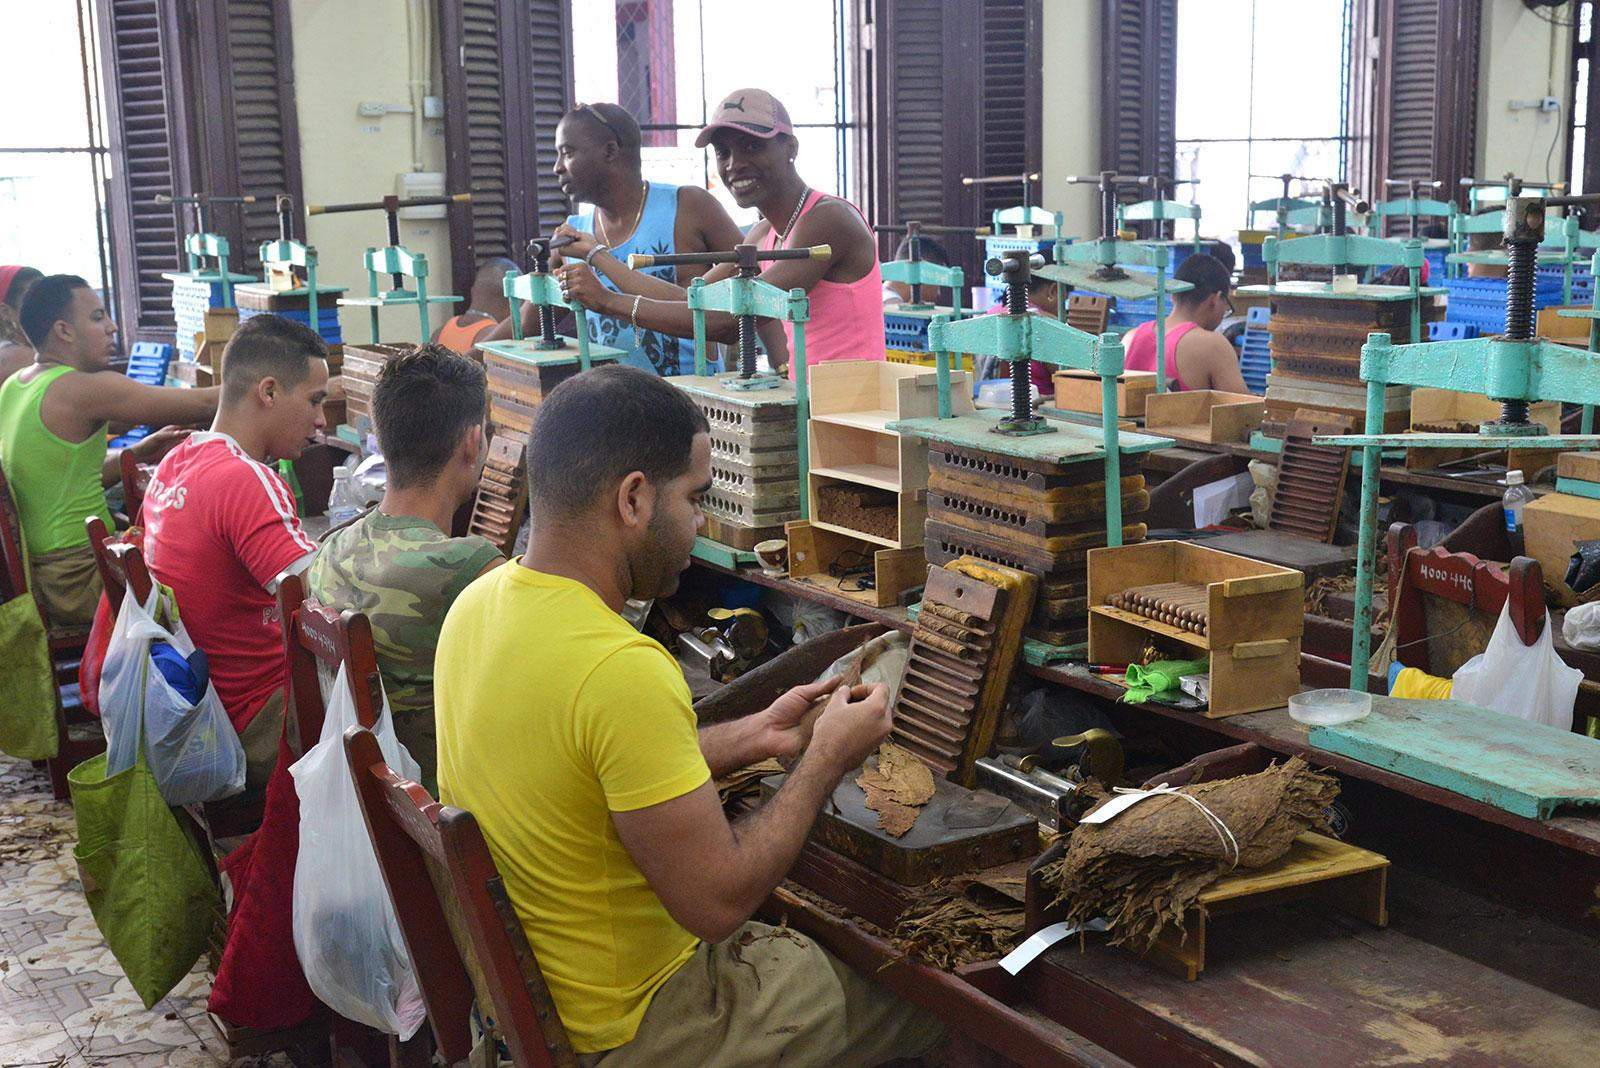 Though Habanos operates a number of factories throughout Cuba, this year, the U. Upmann factory was the only facility open to the tour.